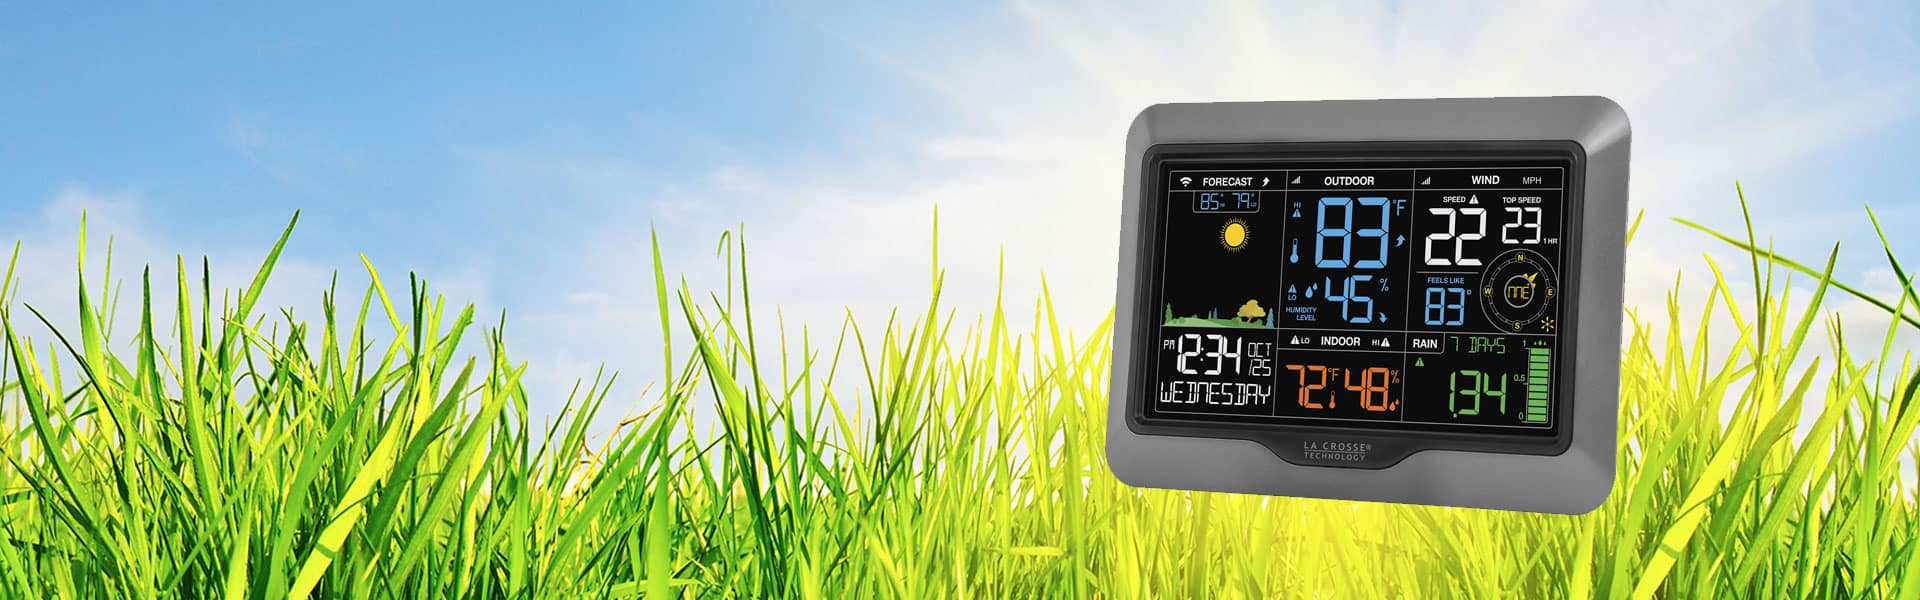 Best Wireless Weather Stations For 2019 – Comprehensive Buying Guide